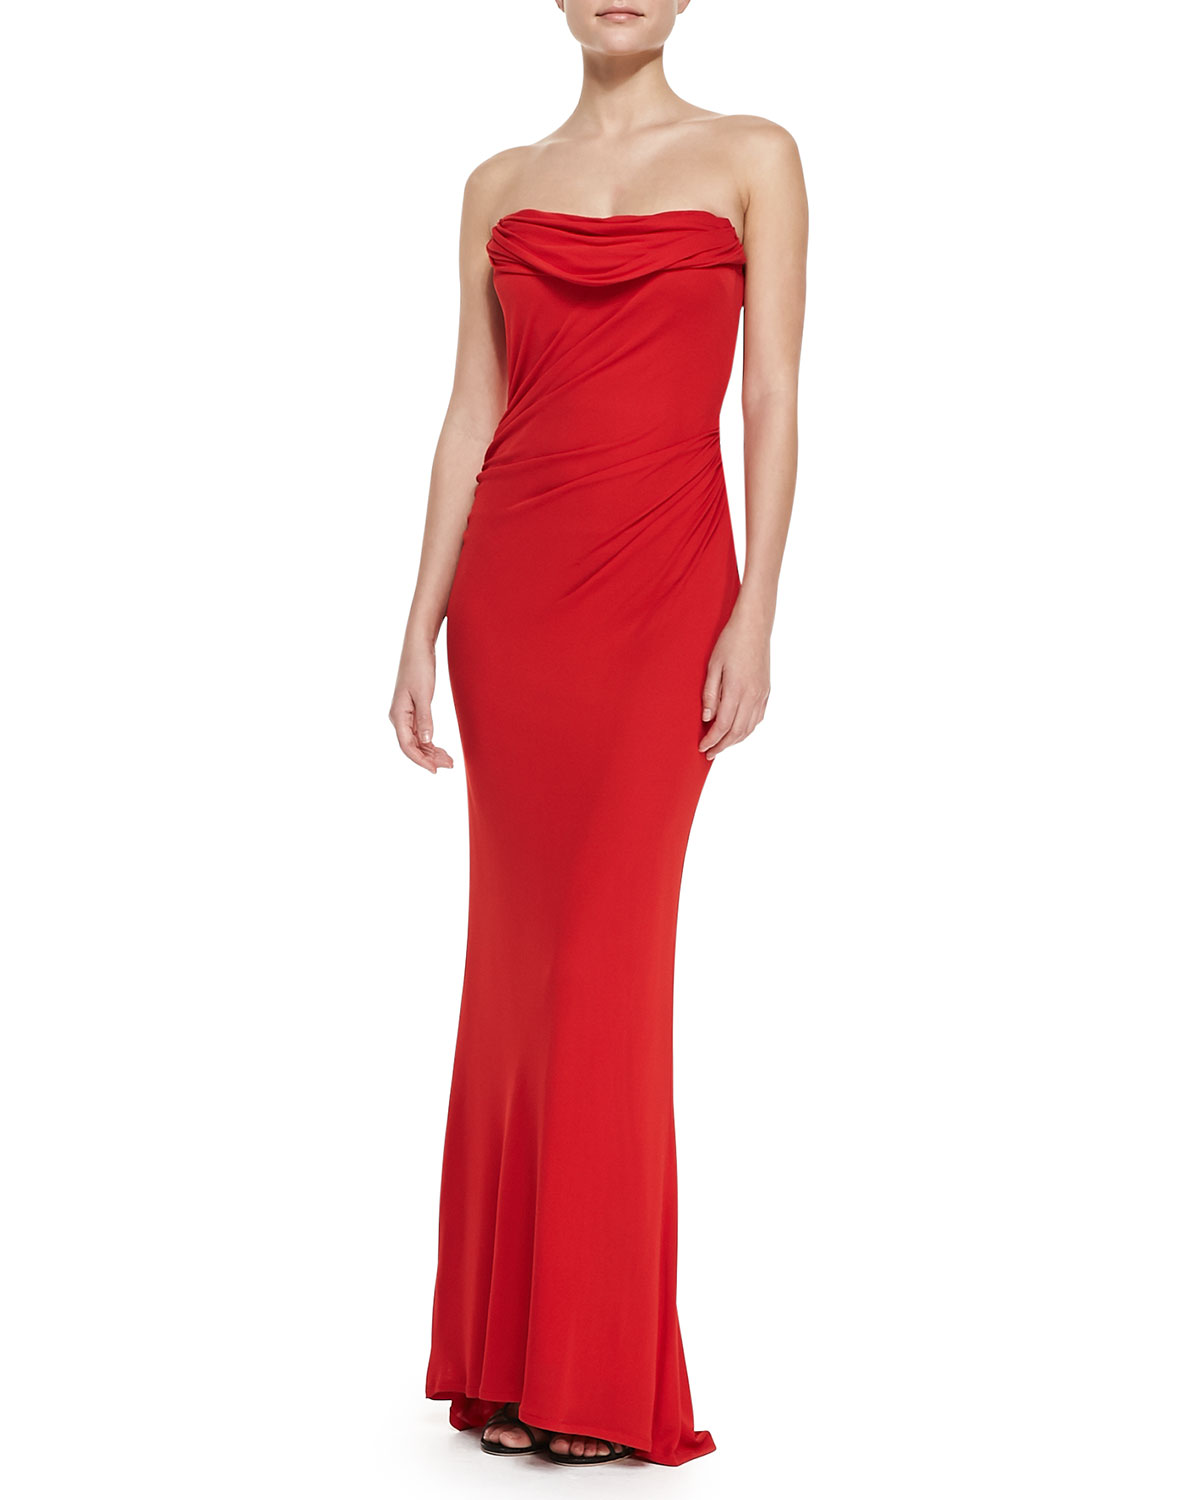 Womens Strapless Draped Front Gown, Red   David Meister   Red (10)